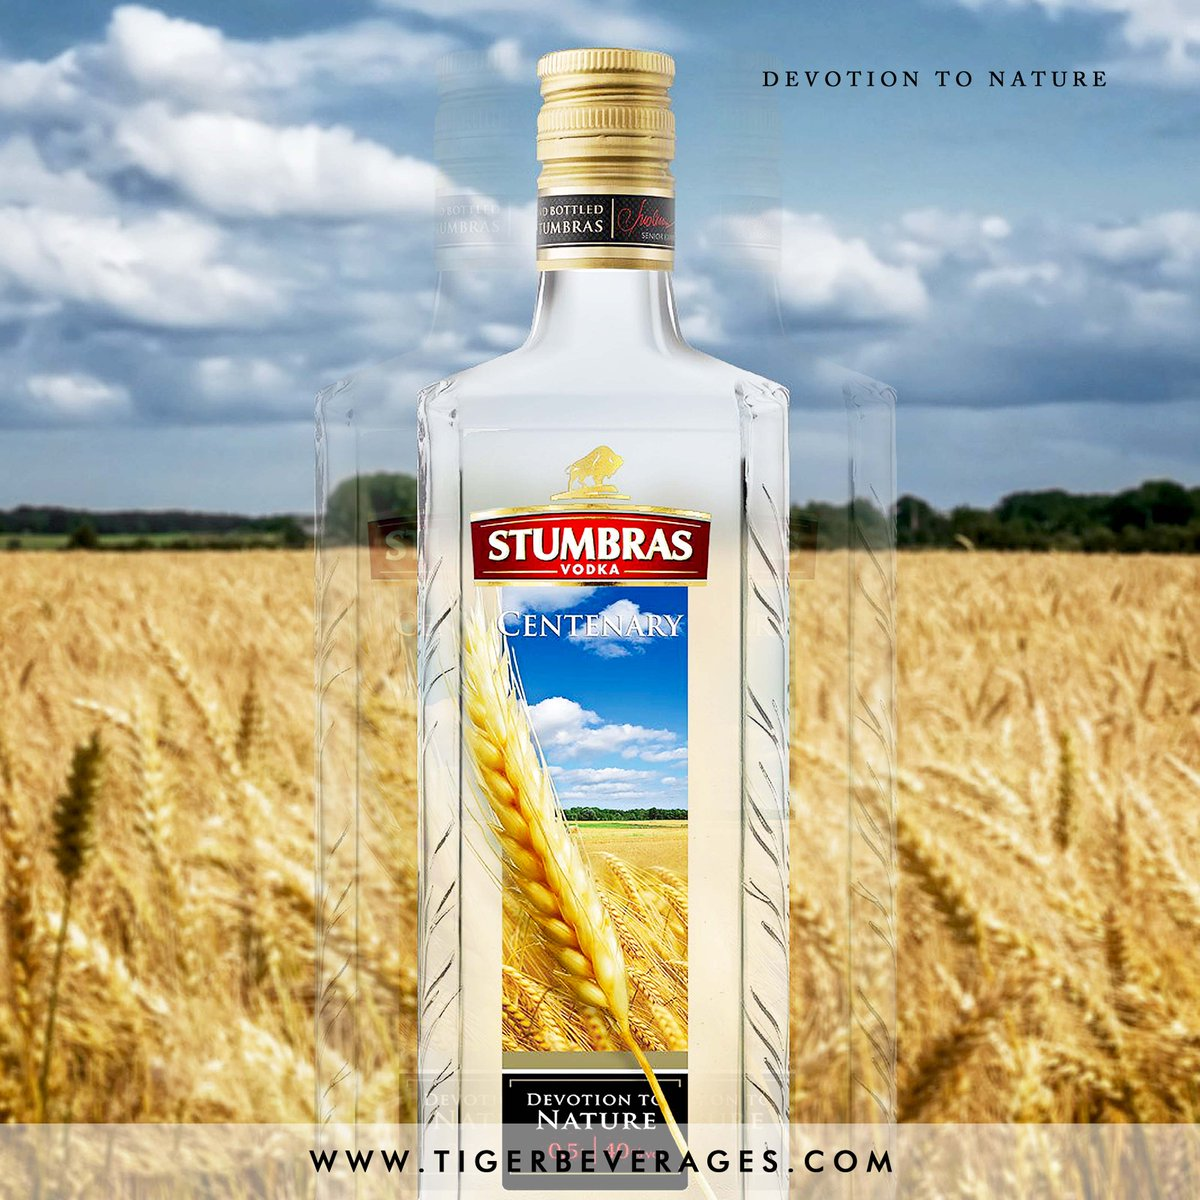 Stumbras Vodka Centenary is a natural and matured beverage. A stalk of wheat is placed into each bottle for a unique touch. You definitely want this Lithuanian goodness because what? Wahala no dey finish😁🥂 #TuesdayVibes #Vodka #TigerBeverages